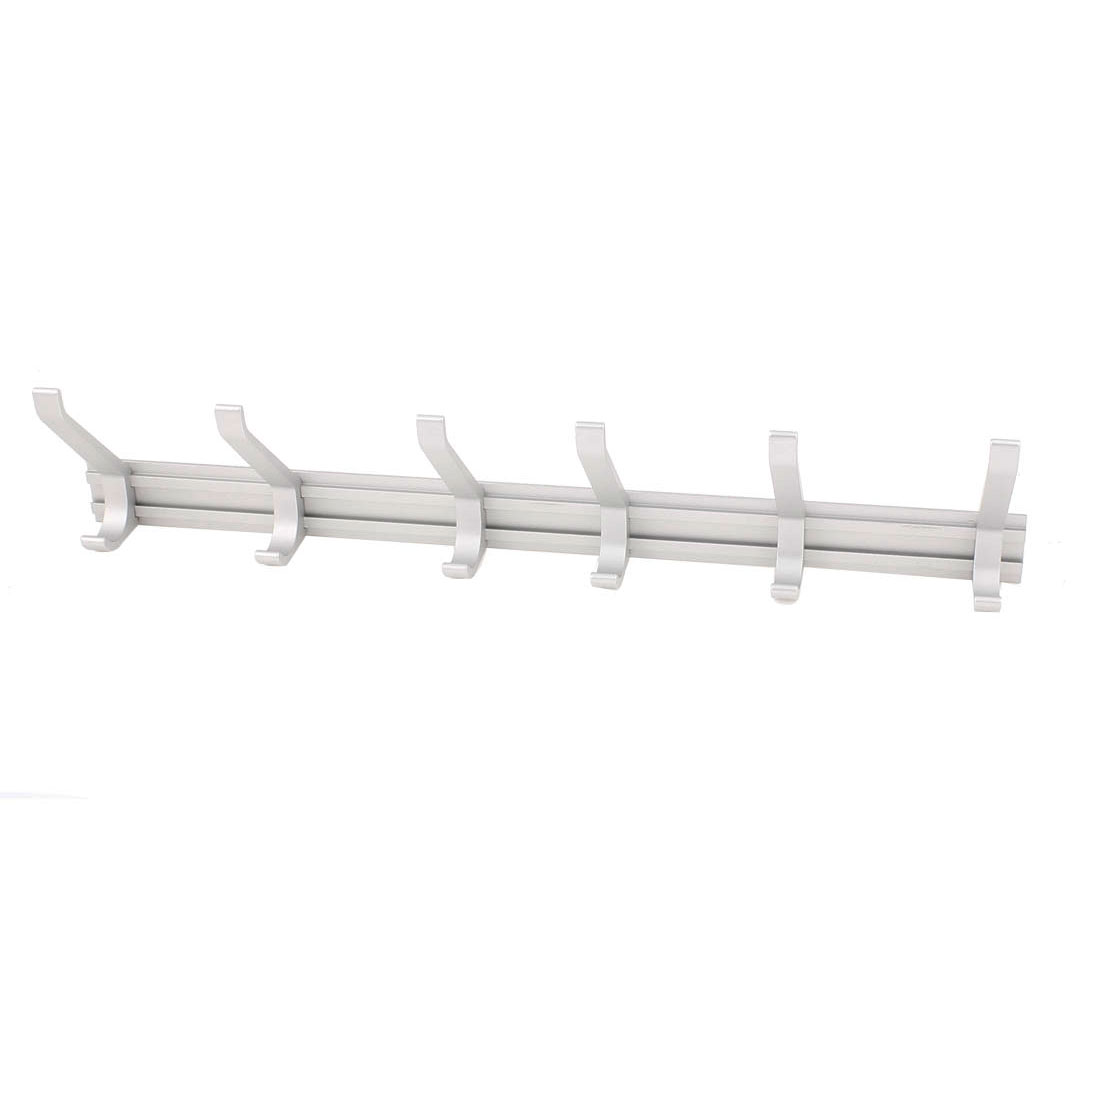 Washroom Aluminum Wall Mount Towel Coat Hat Bag 7 Hooks Hanger Rack Silver Tone